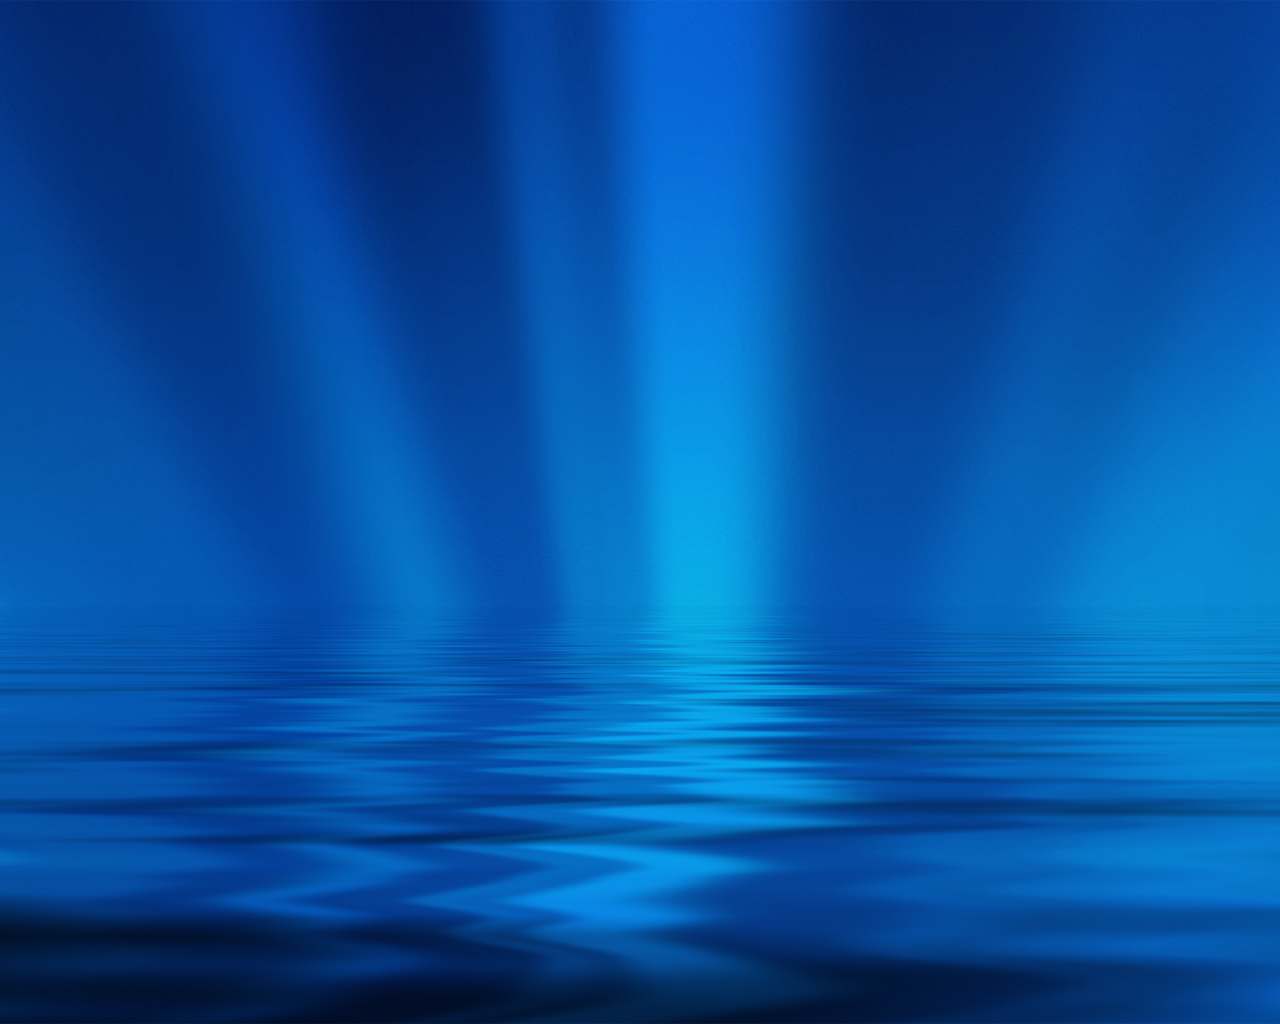 Blue Wallpapers HD Download Wallpaper DaWallpaperz 1280x1024